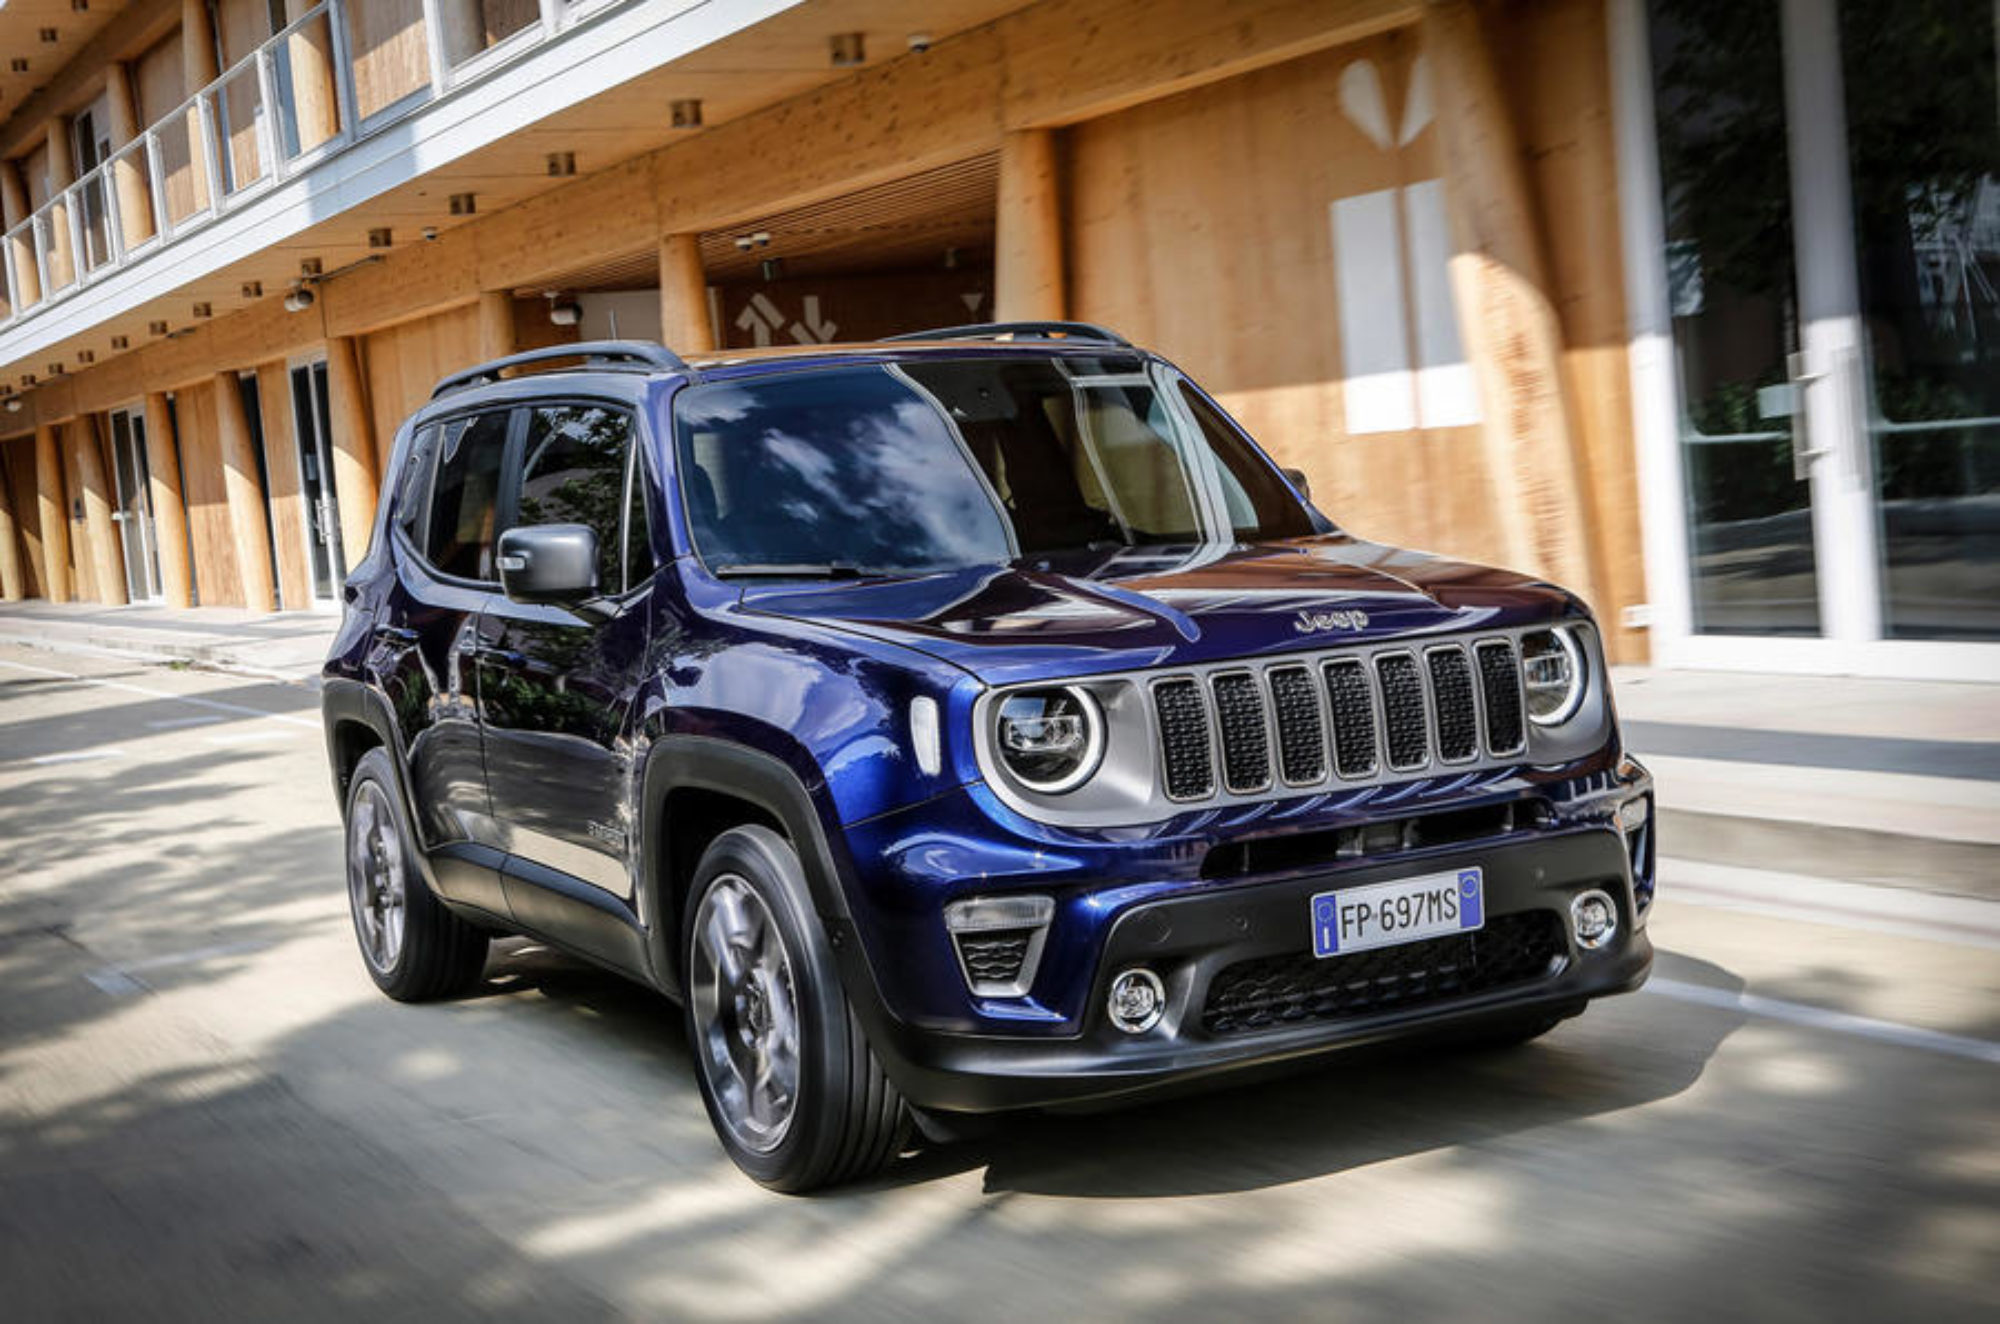 2020 Jeep Renegade Hybrid Debut Details >> 2020 Jeep Renegade Hybrid Nearly Ready Enrg Io